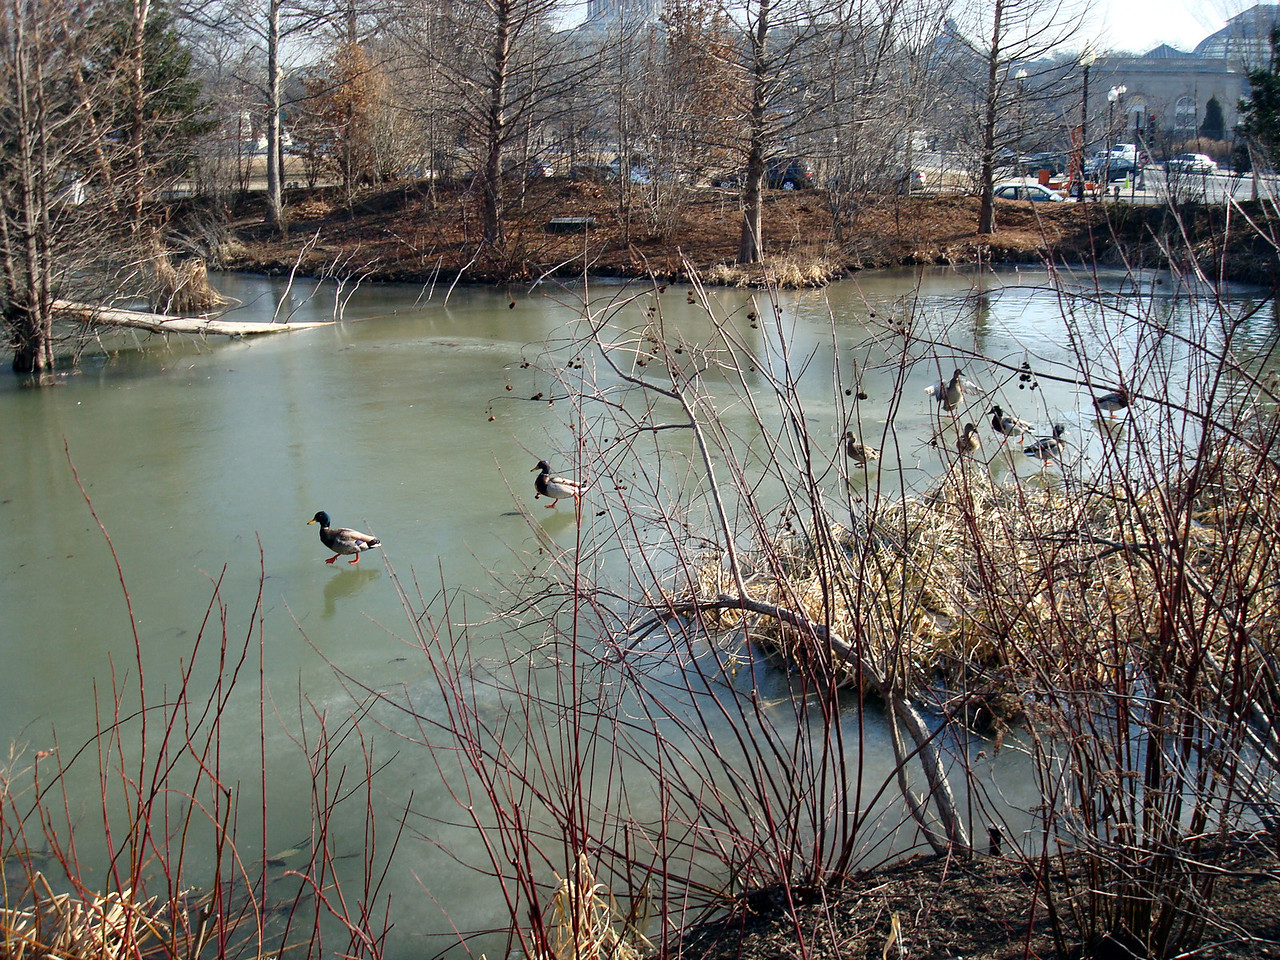 Ducks on ice and some water at National Museum of the American Indian